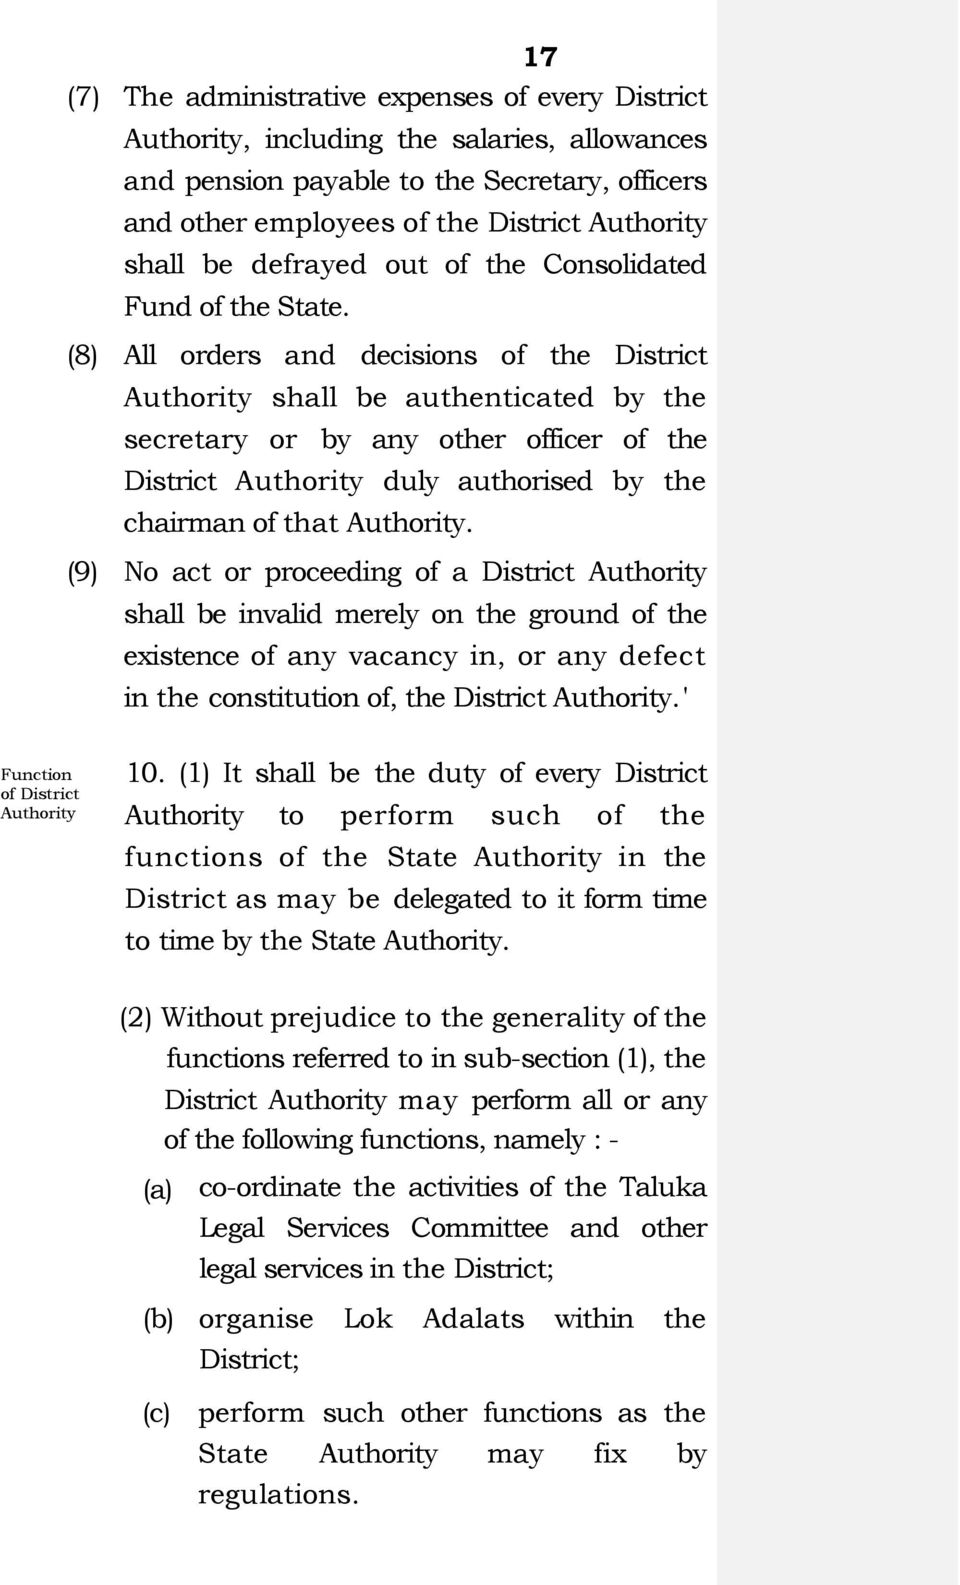 (8) All orders and decisions of the District Authority shall be authenticated by the secretary or by any other officer of the District Authority duly authorised by the chairman of that Authority.